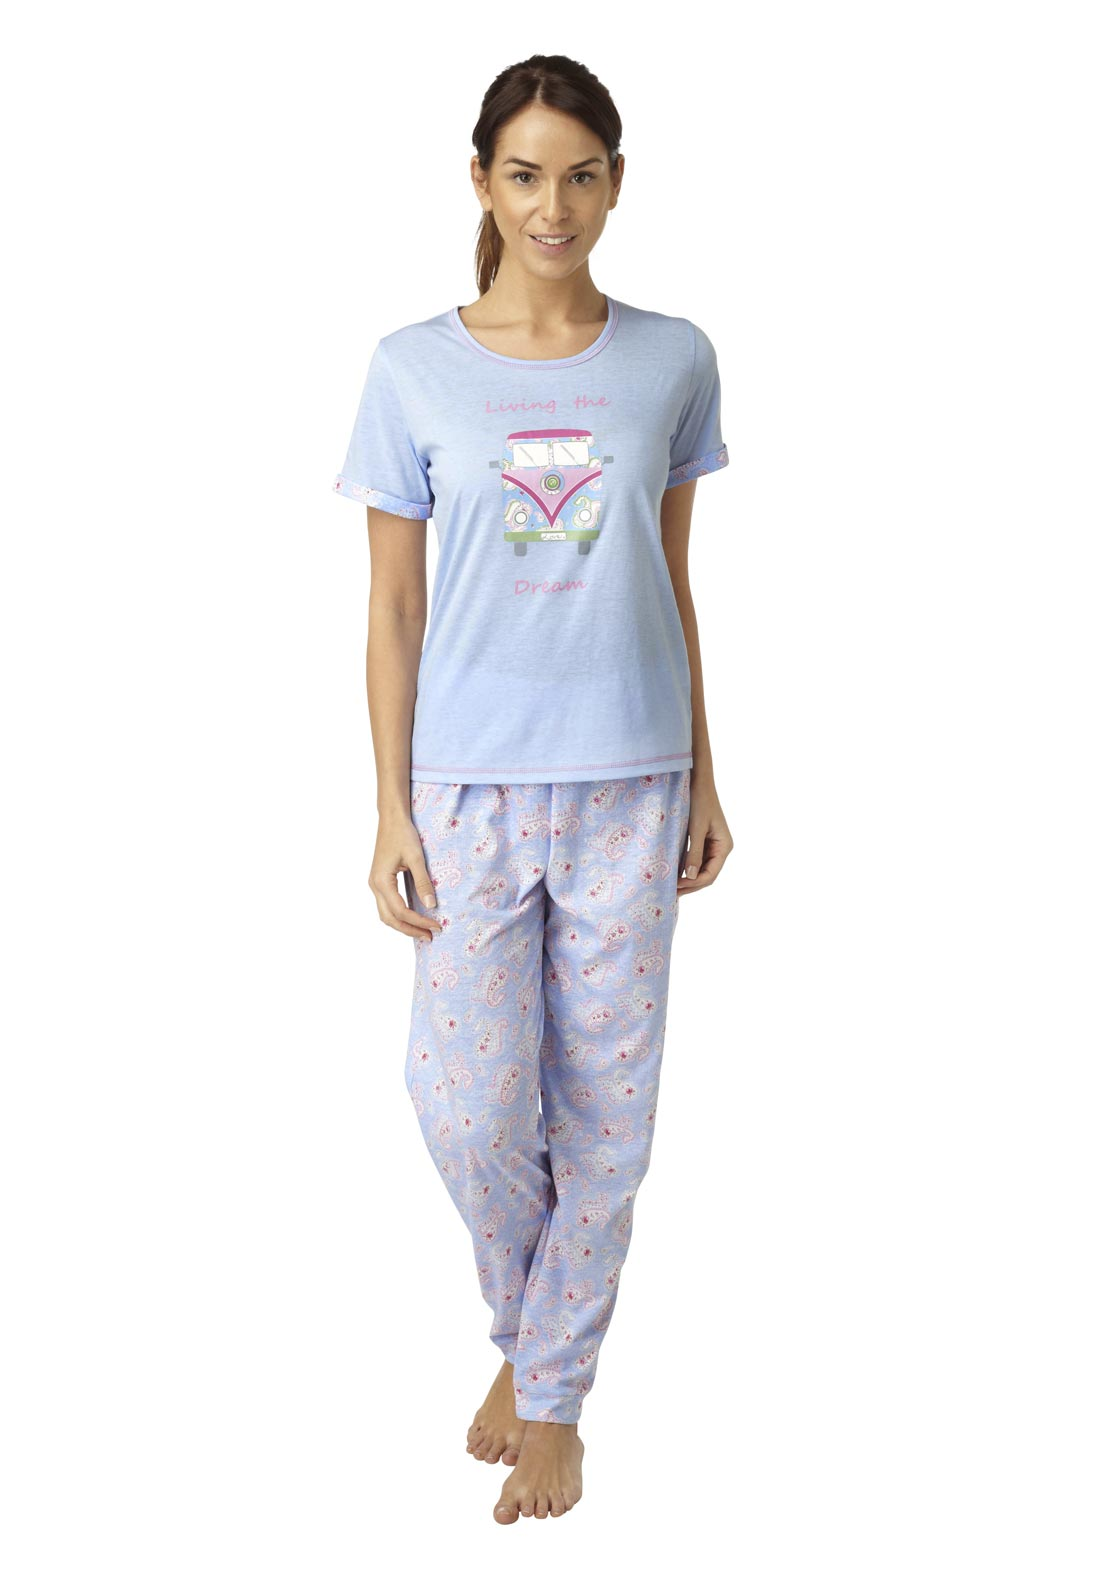 Indigo Sky Love Van Pyjama Set, Blue